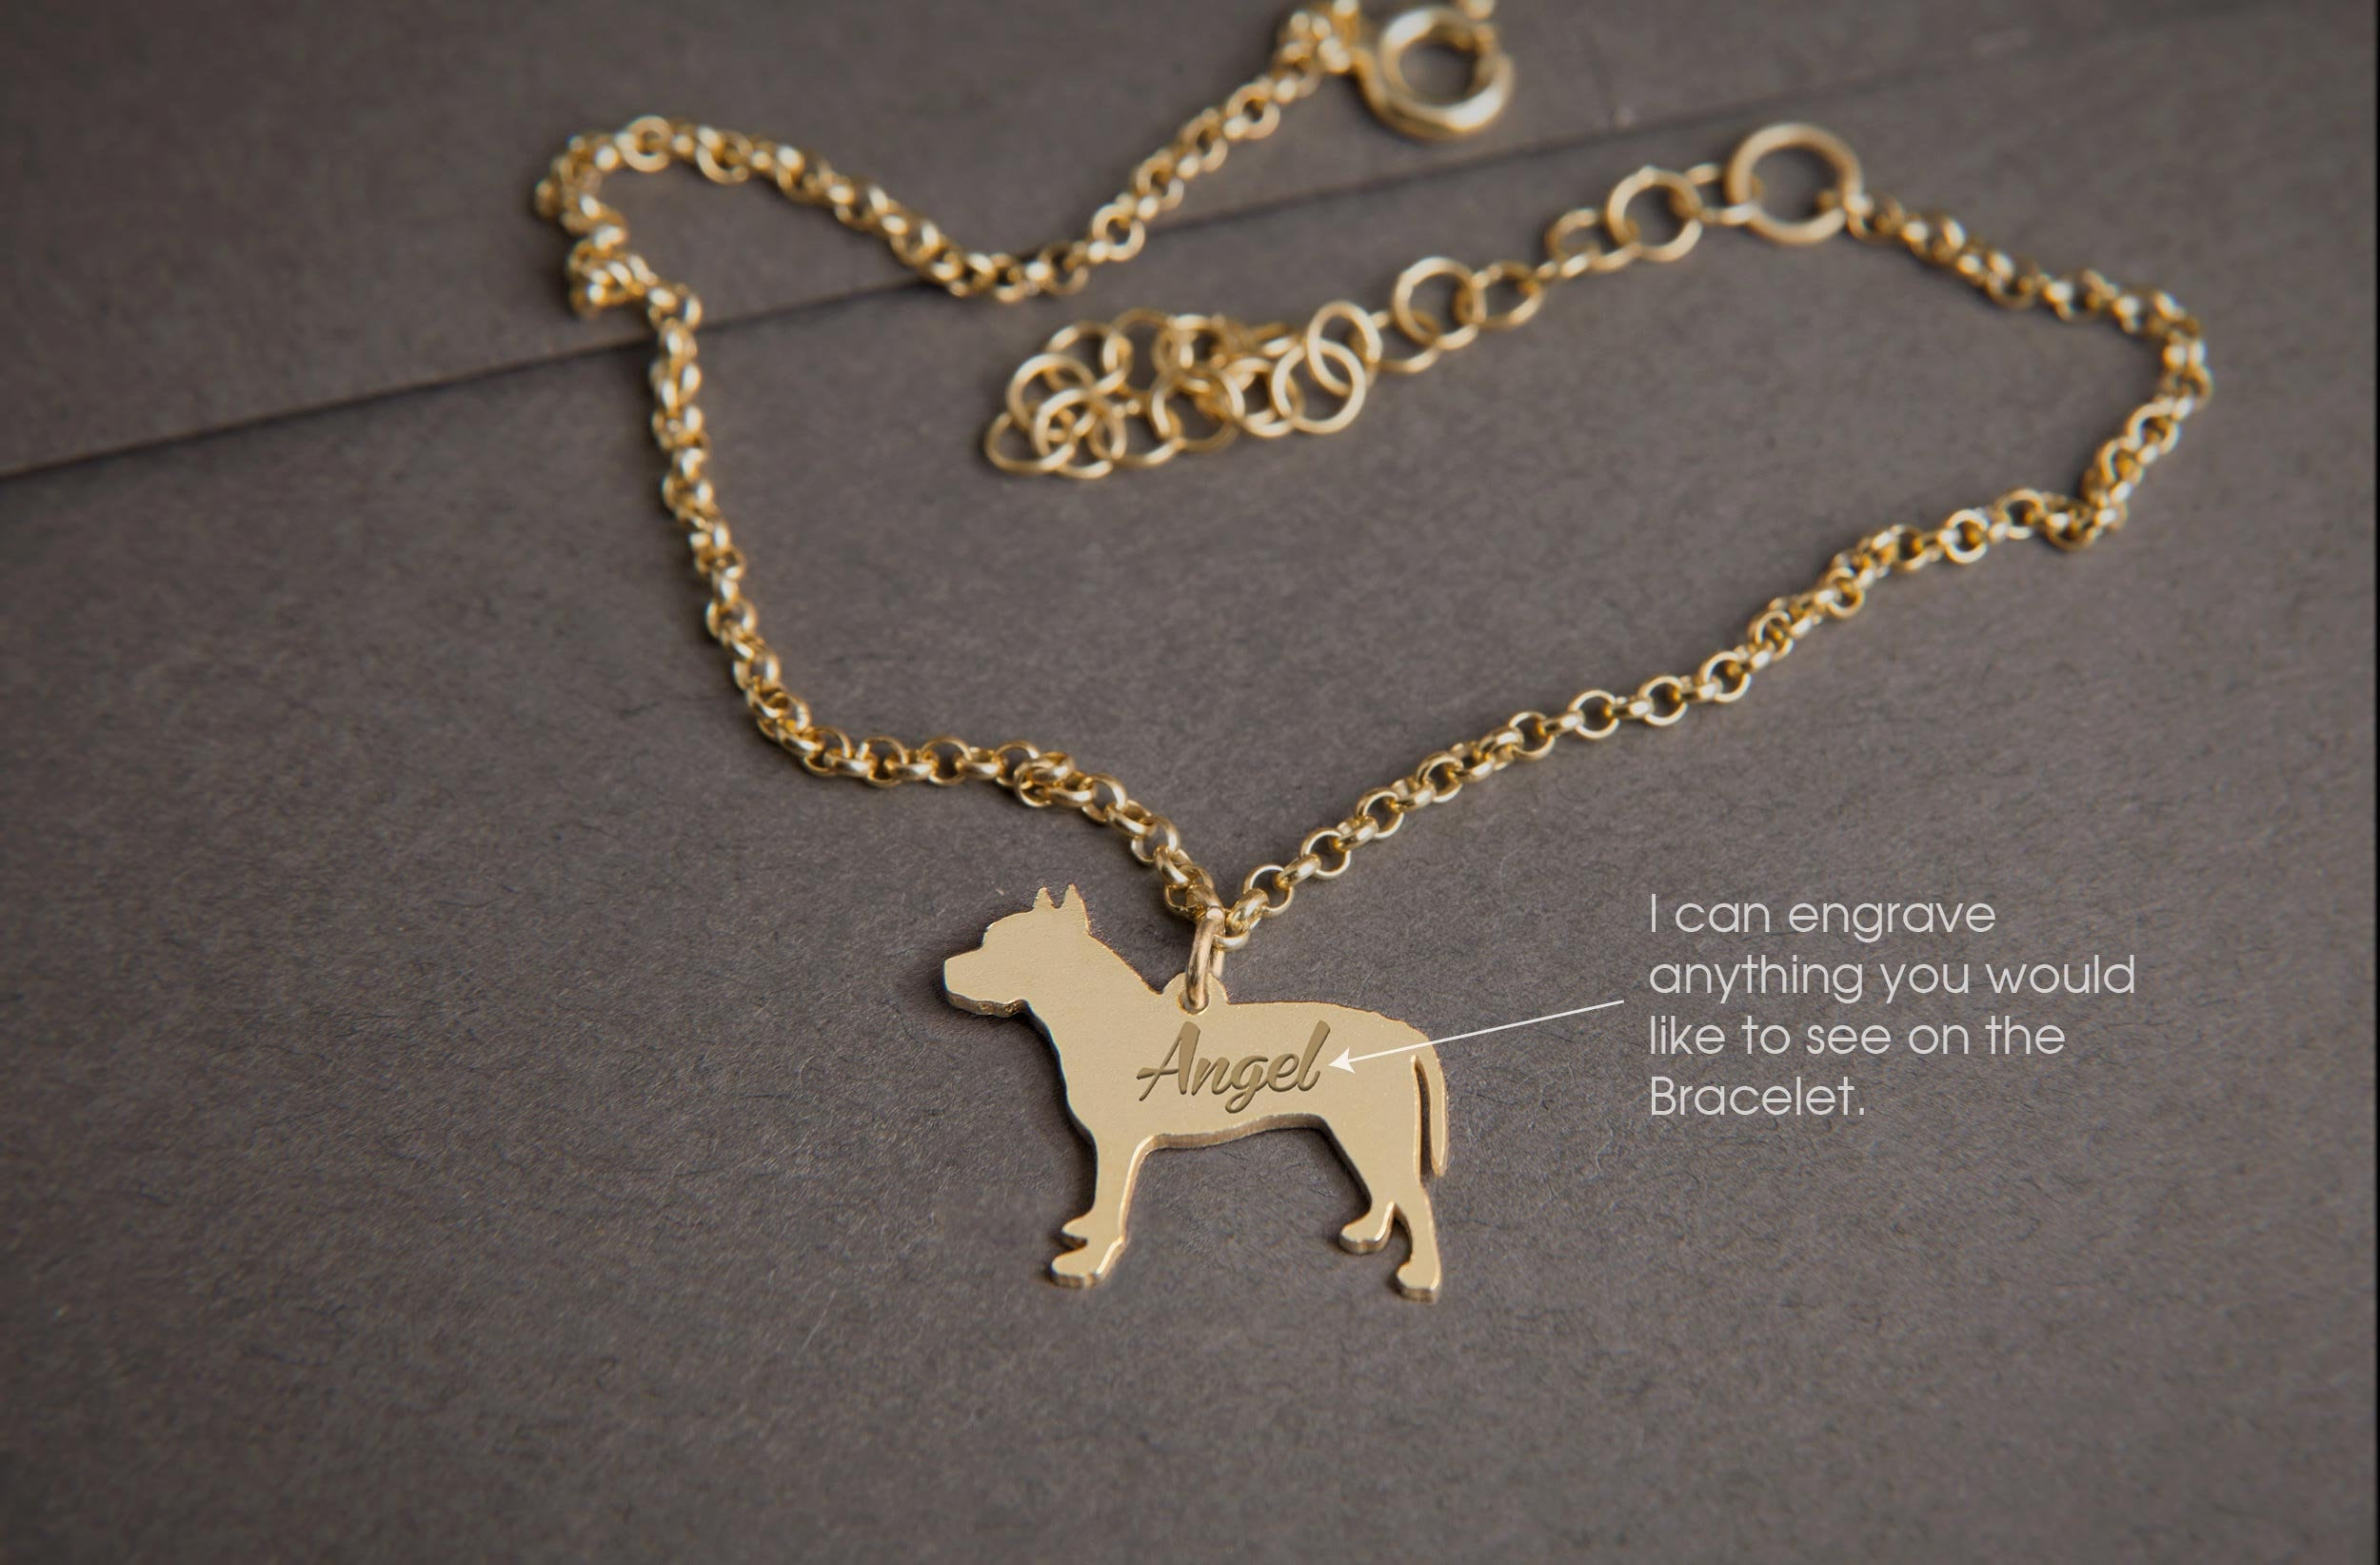 PIT BULL TERRIER Personalised Tiny Silver Bracelet - Pit Bull Bracelet -  925 Sterling Silver, Gold Plated or Rose Plated